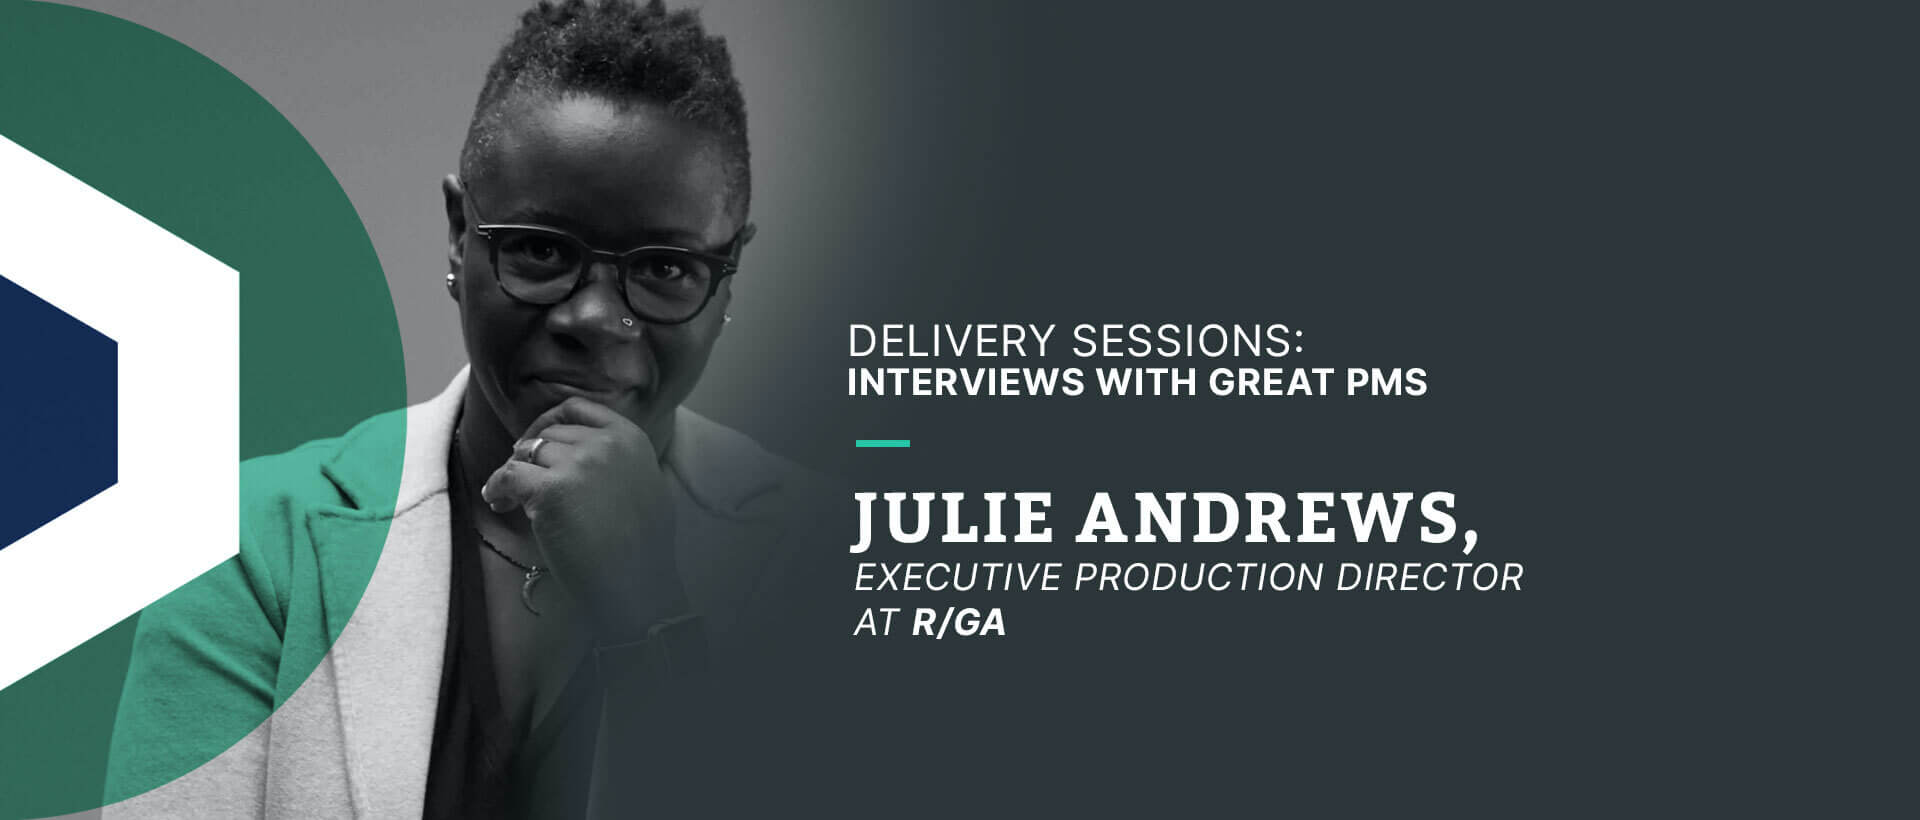 Delivery Session Interview with Julie Andrews